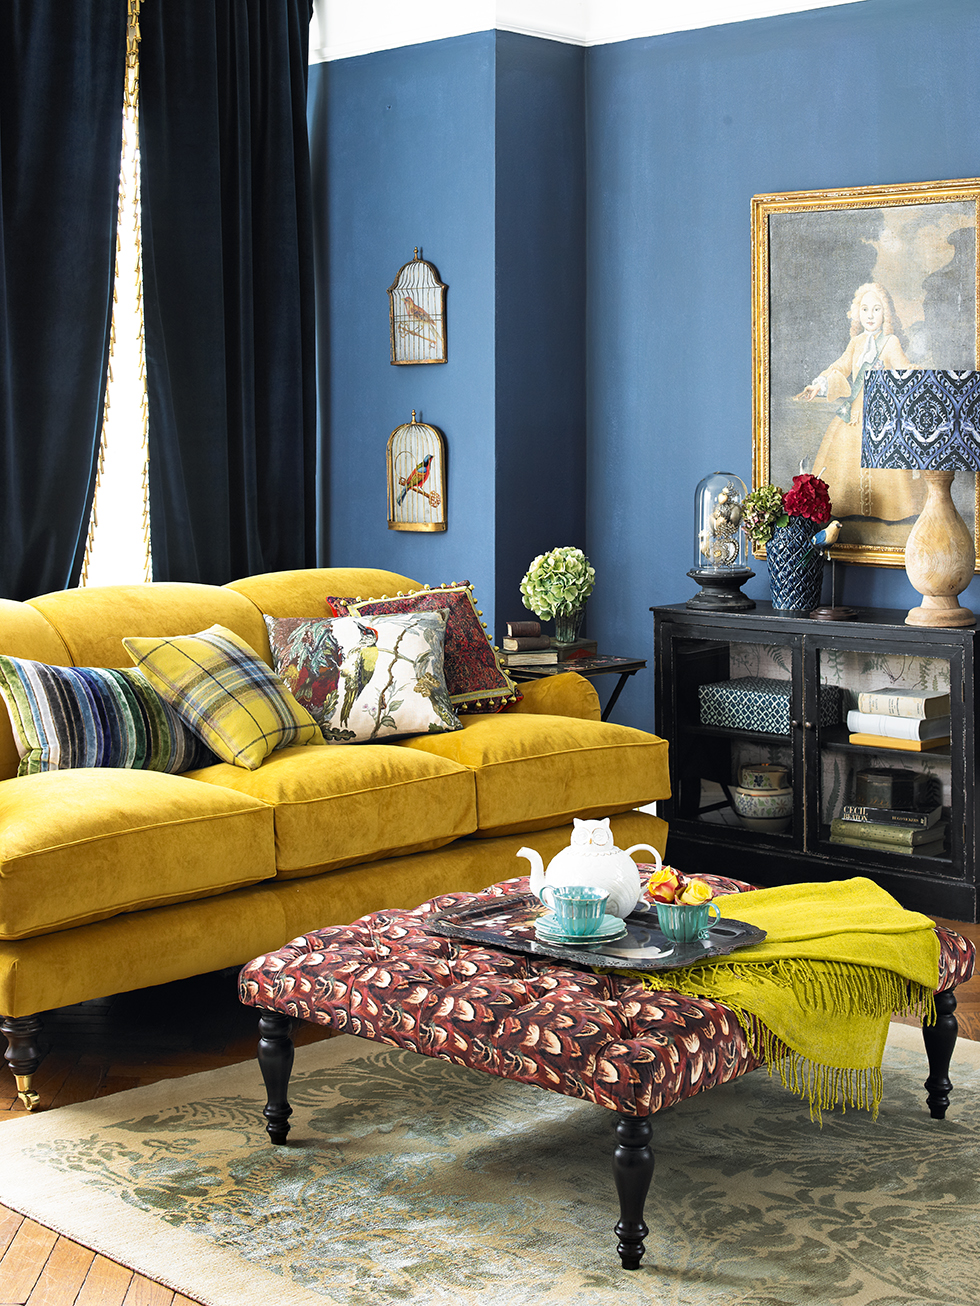 Eclectic british decorating ideas period living Yellow wall living room decor